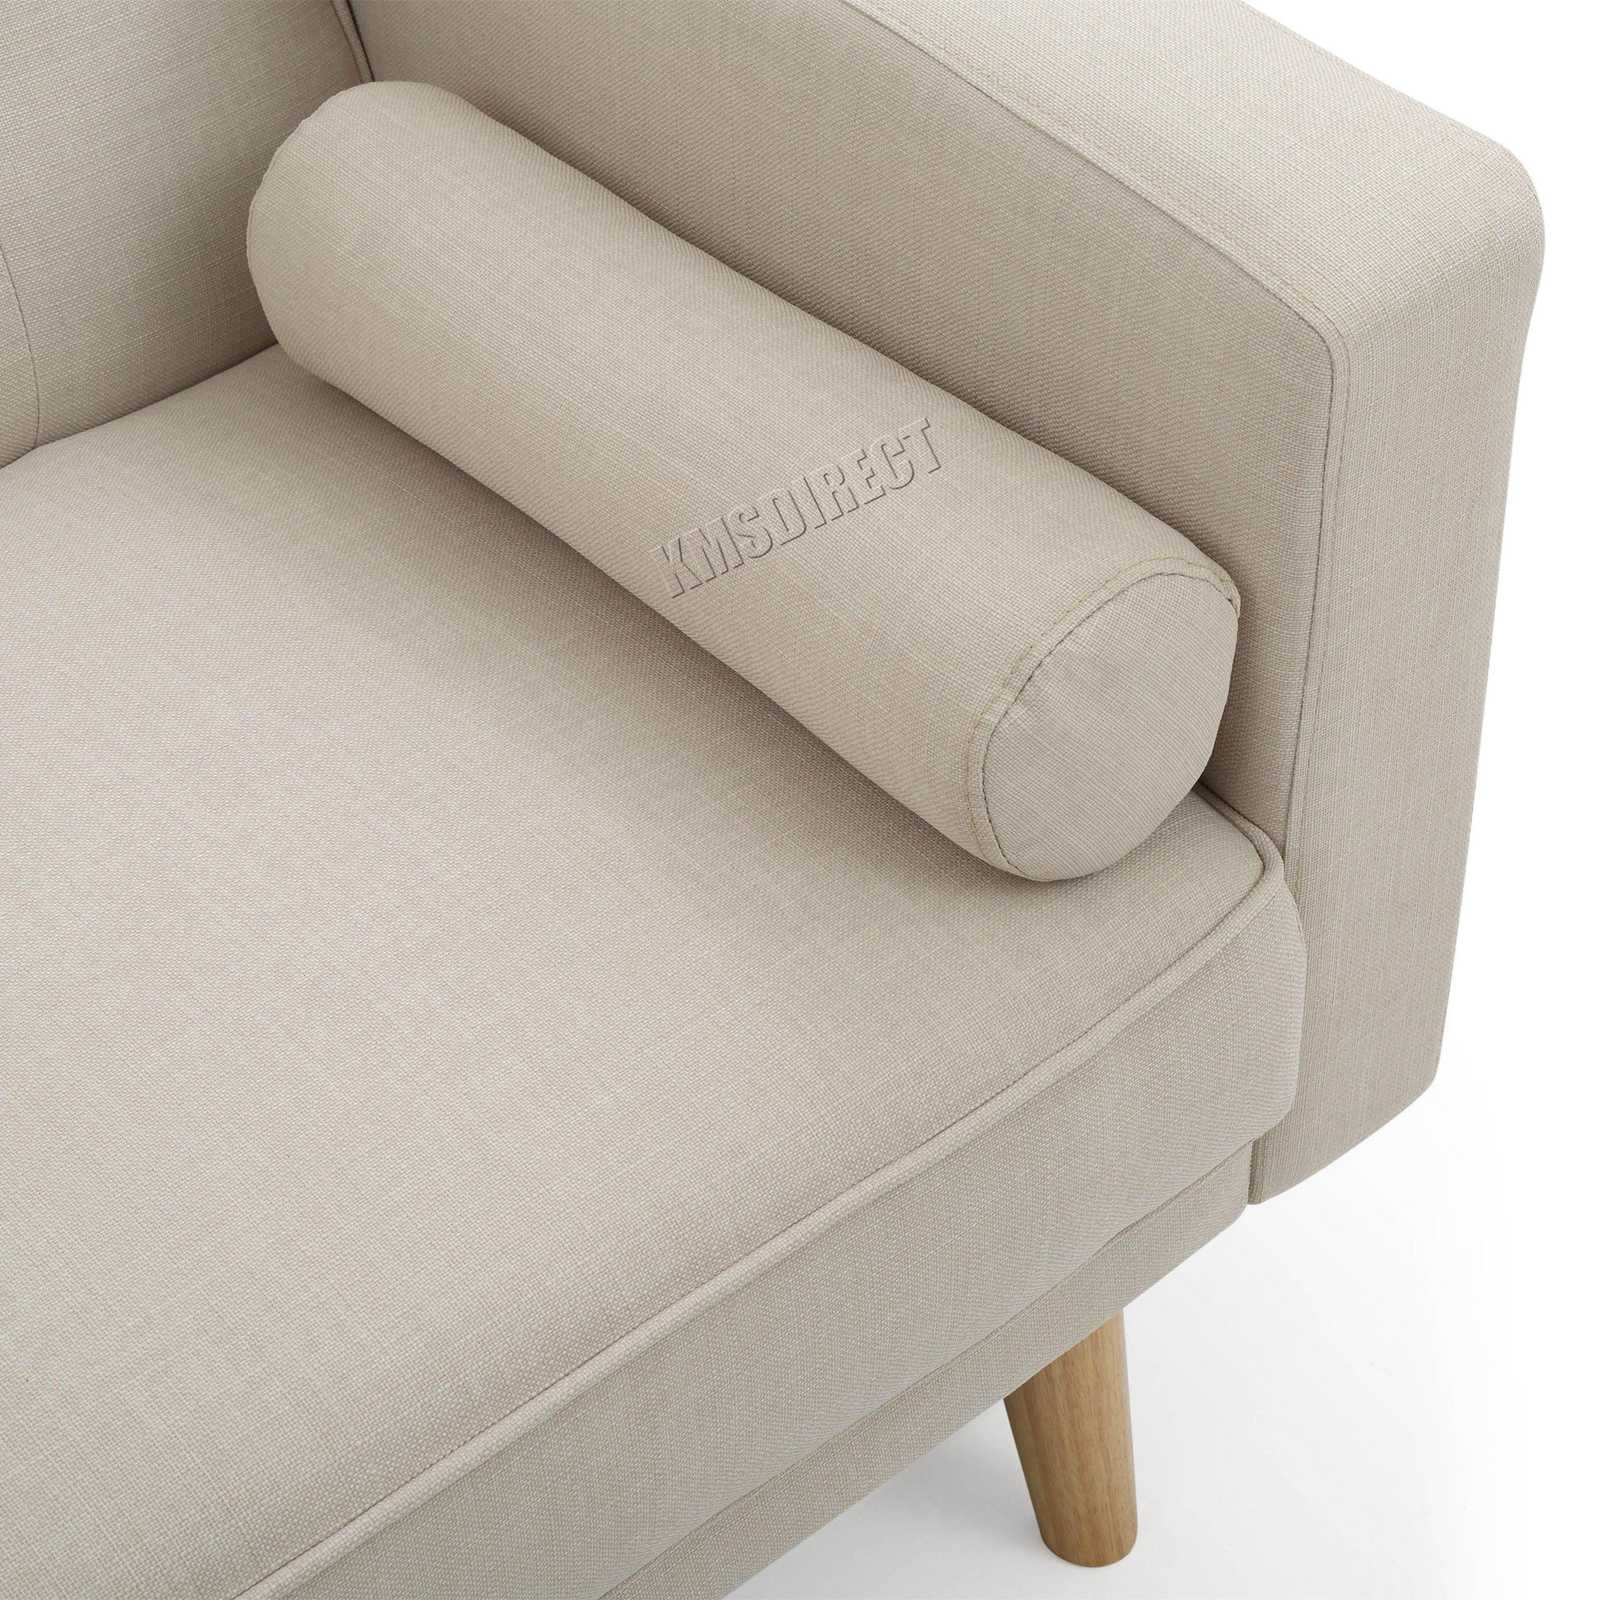 WestWood-Fabric-Sofa-Bed-3-Seater-Couch-Luxury-Modern-Home-Furniture-FSB04-New thumbnail 19